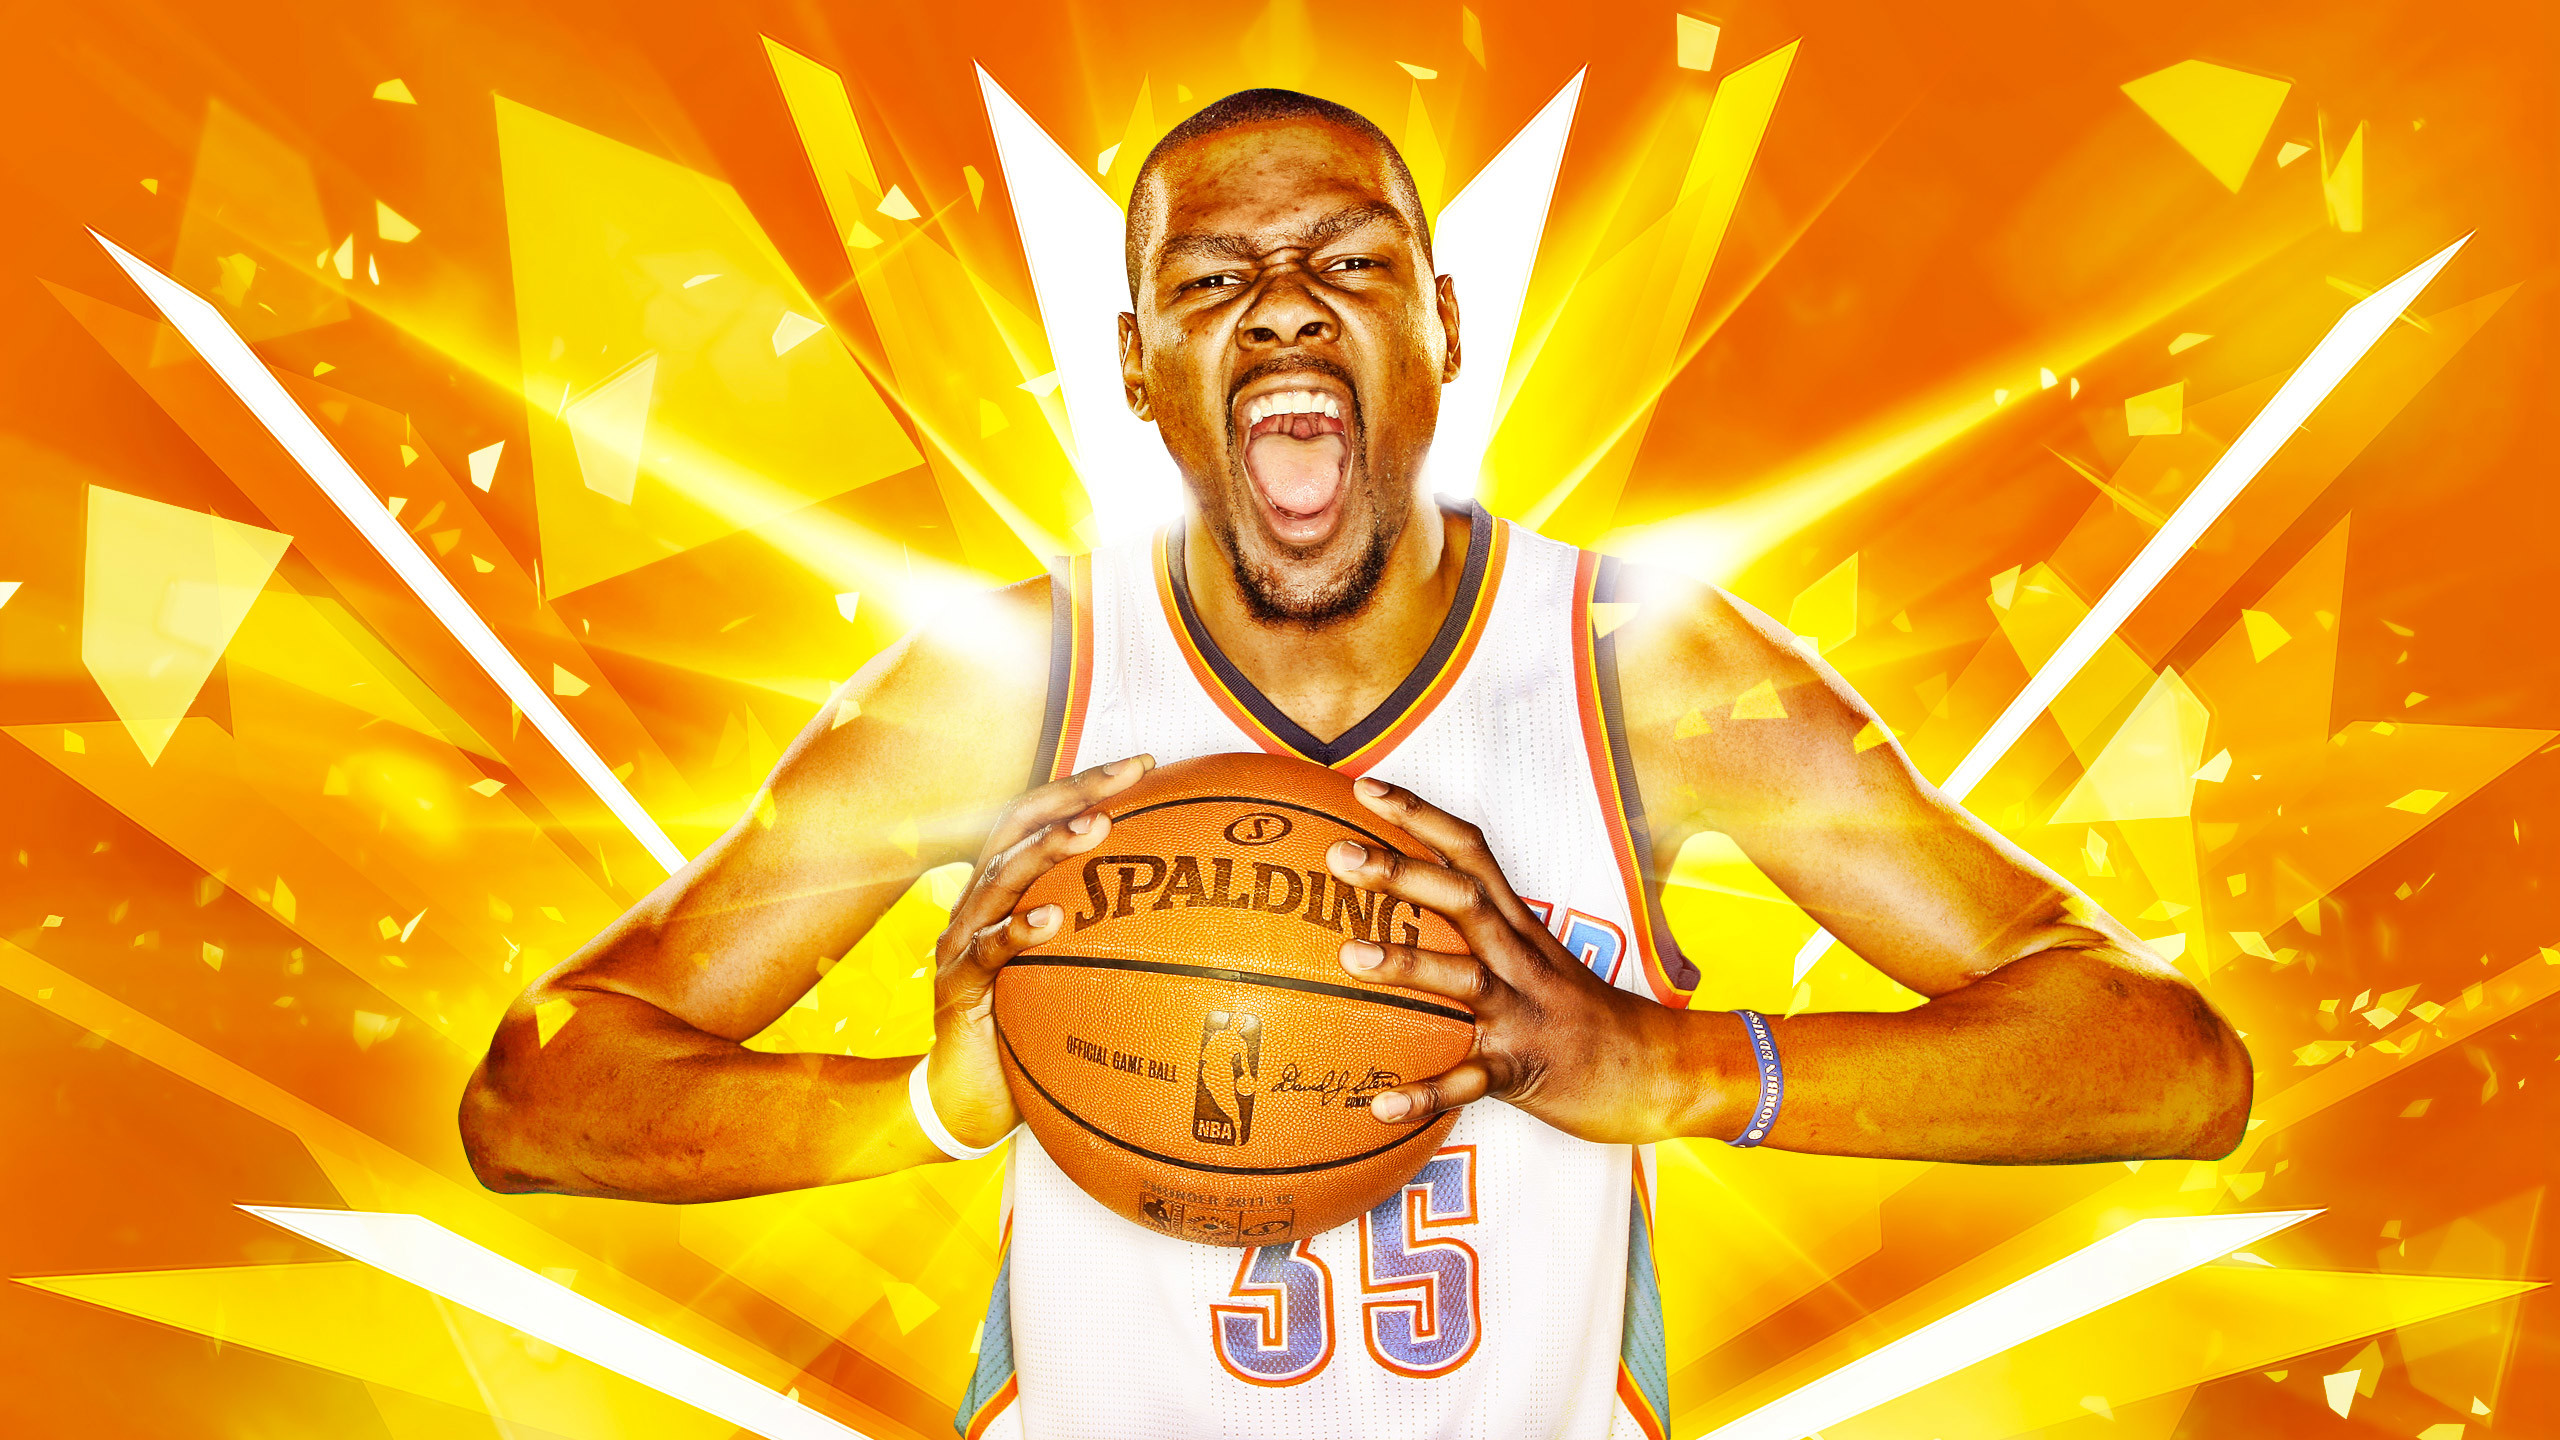 Res: 2560x1440, Kevin Durant OKC Thunder 2016 Wallpaper